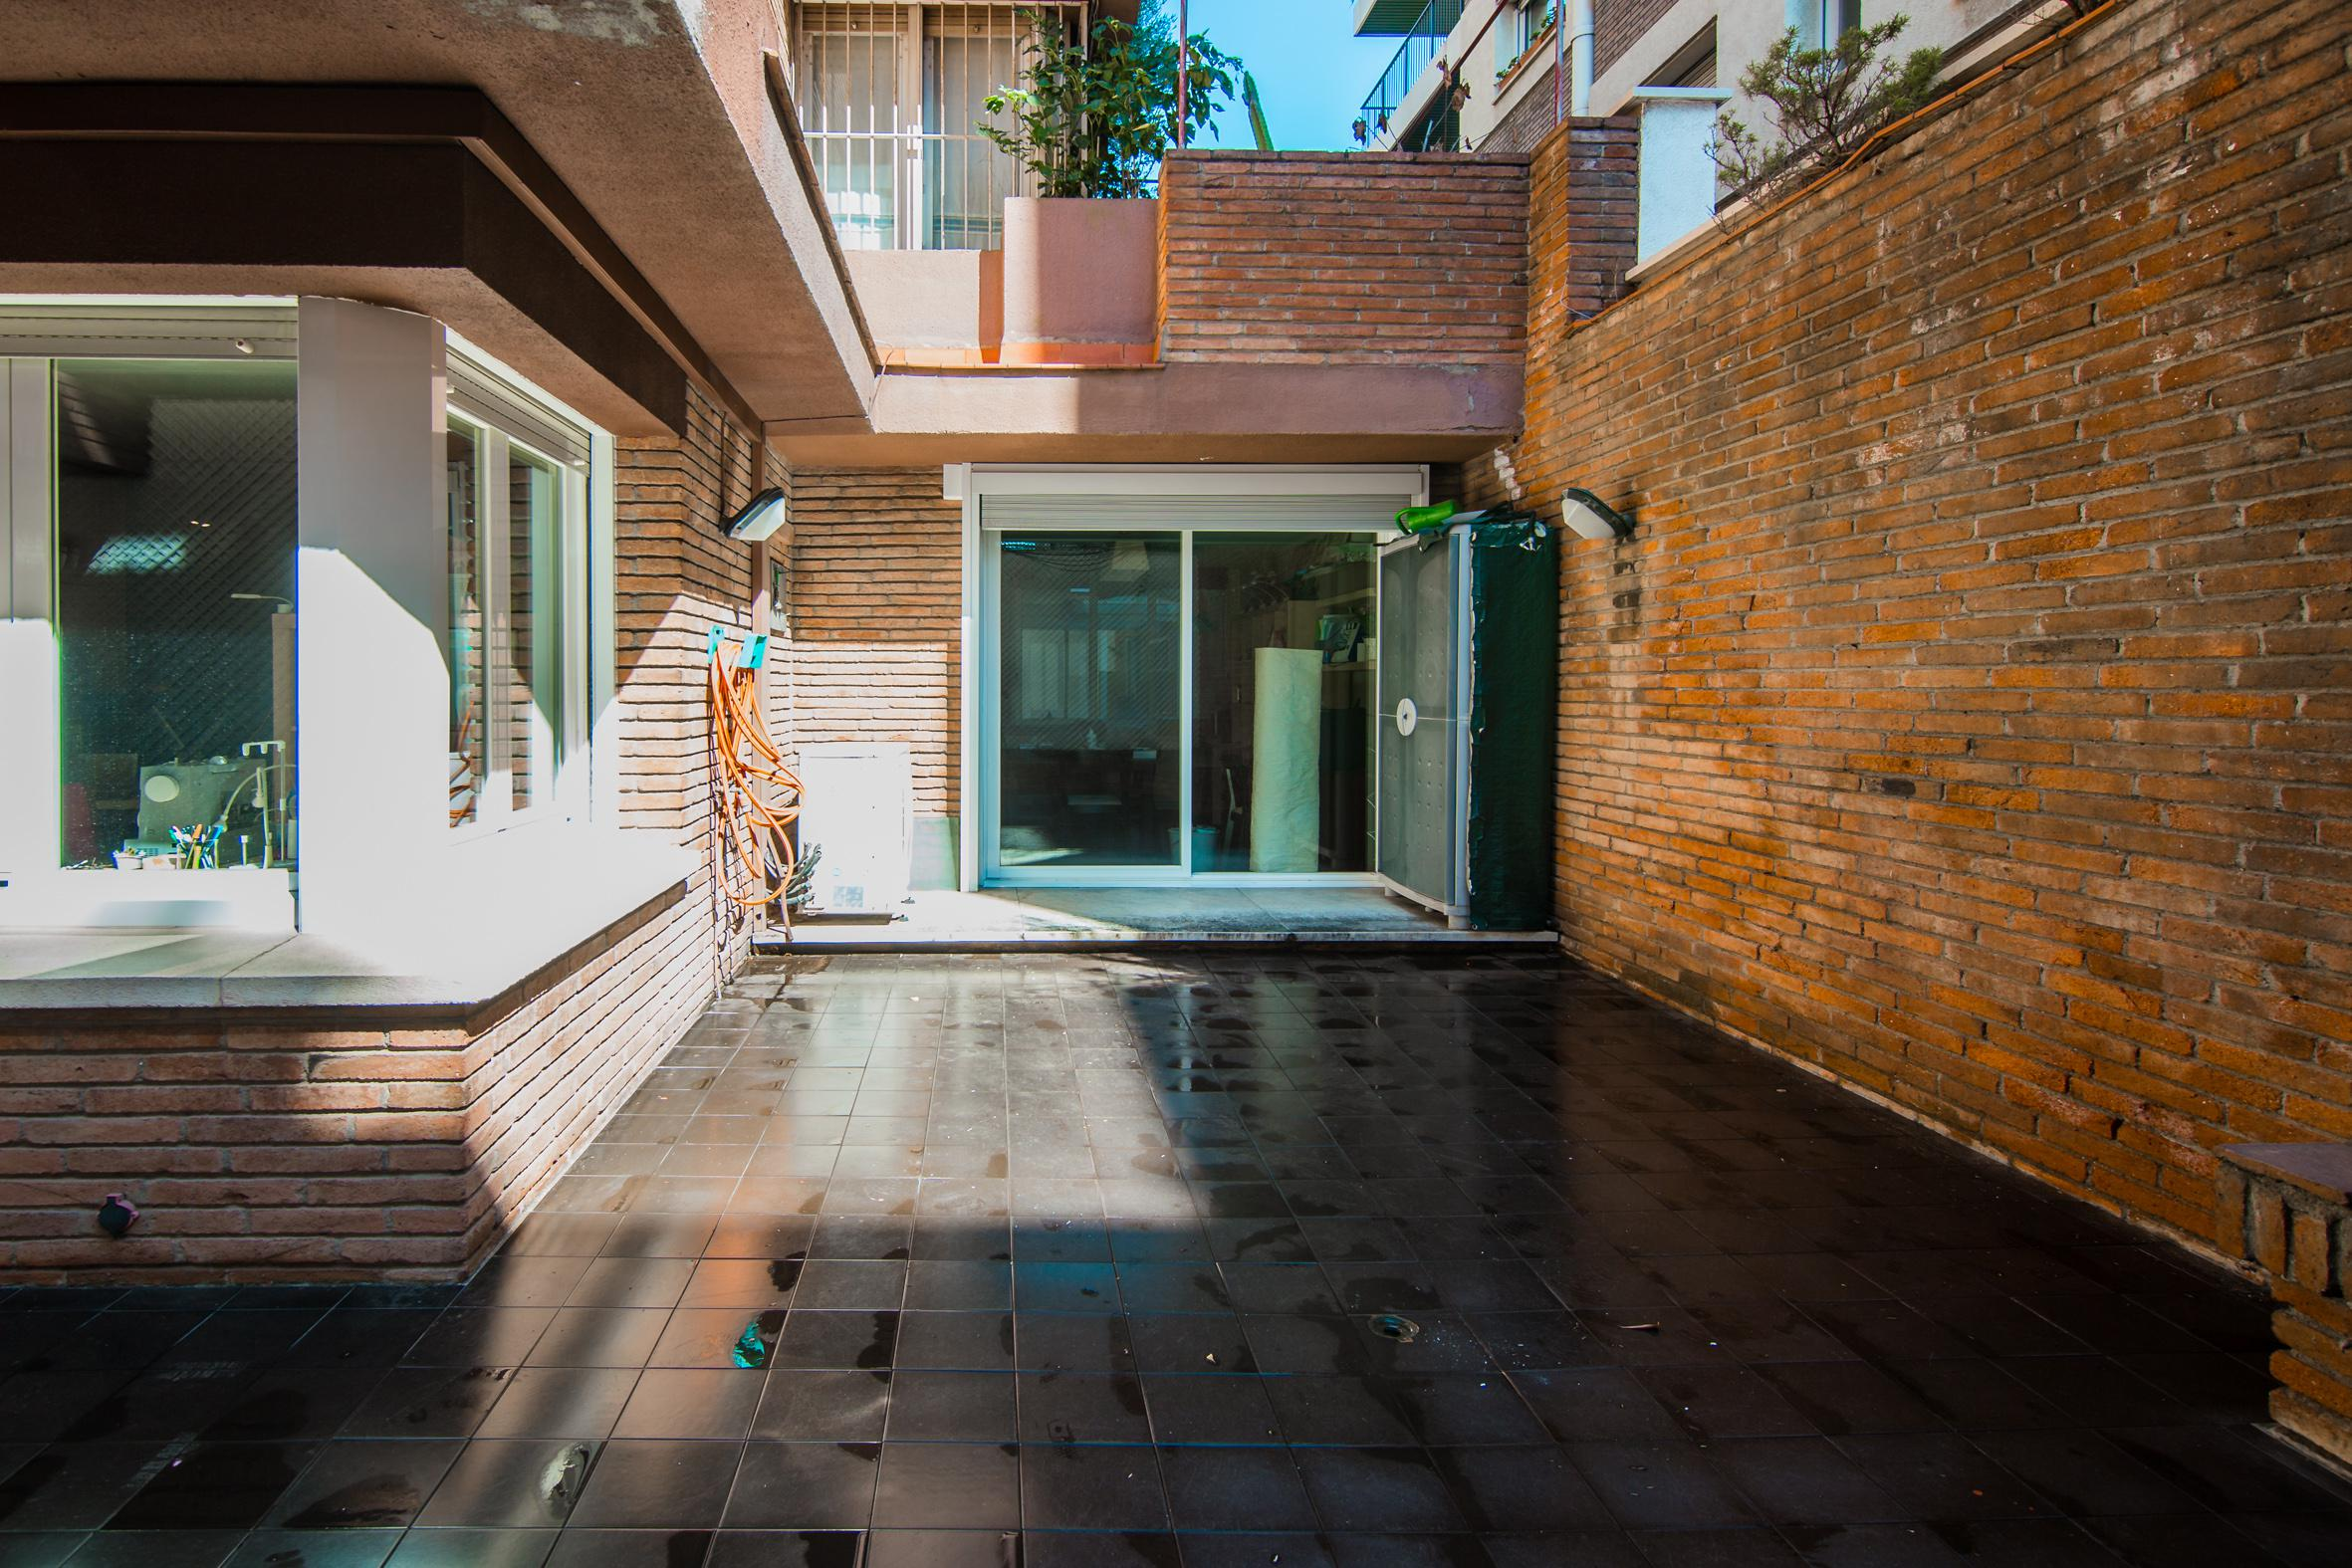 233306 Ground floor for sale in Sarrià-Sant Gervasi, Sant Gervasi-Galvany 33